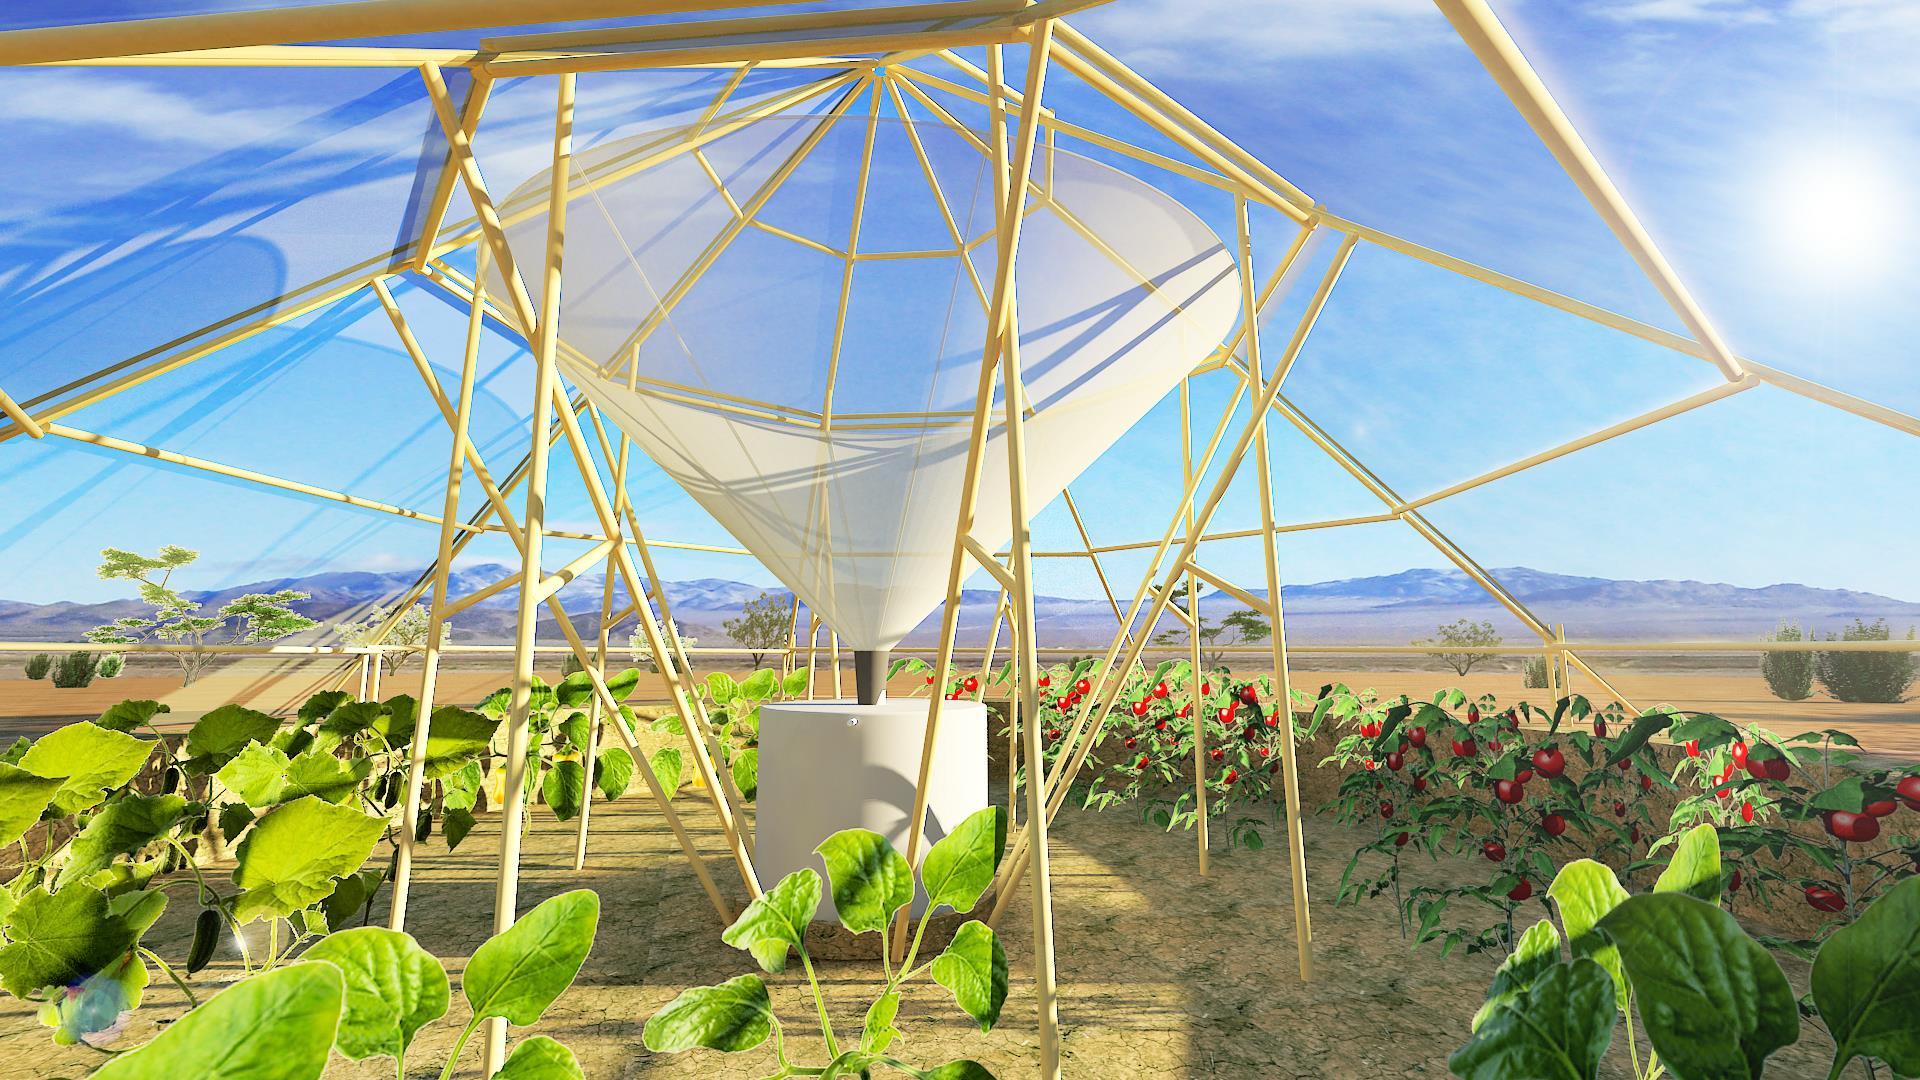 3D-water-collector-inside-the-greenhouse.jpg